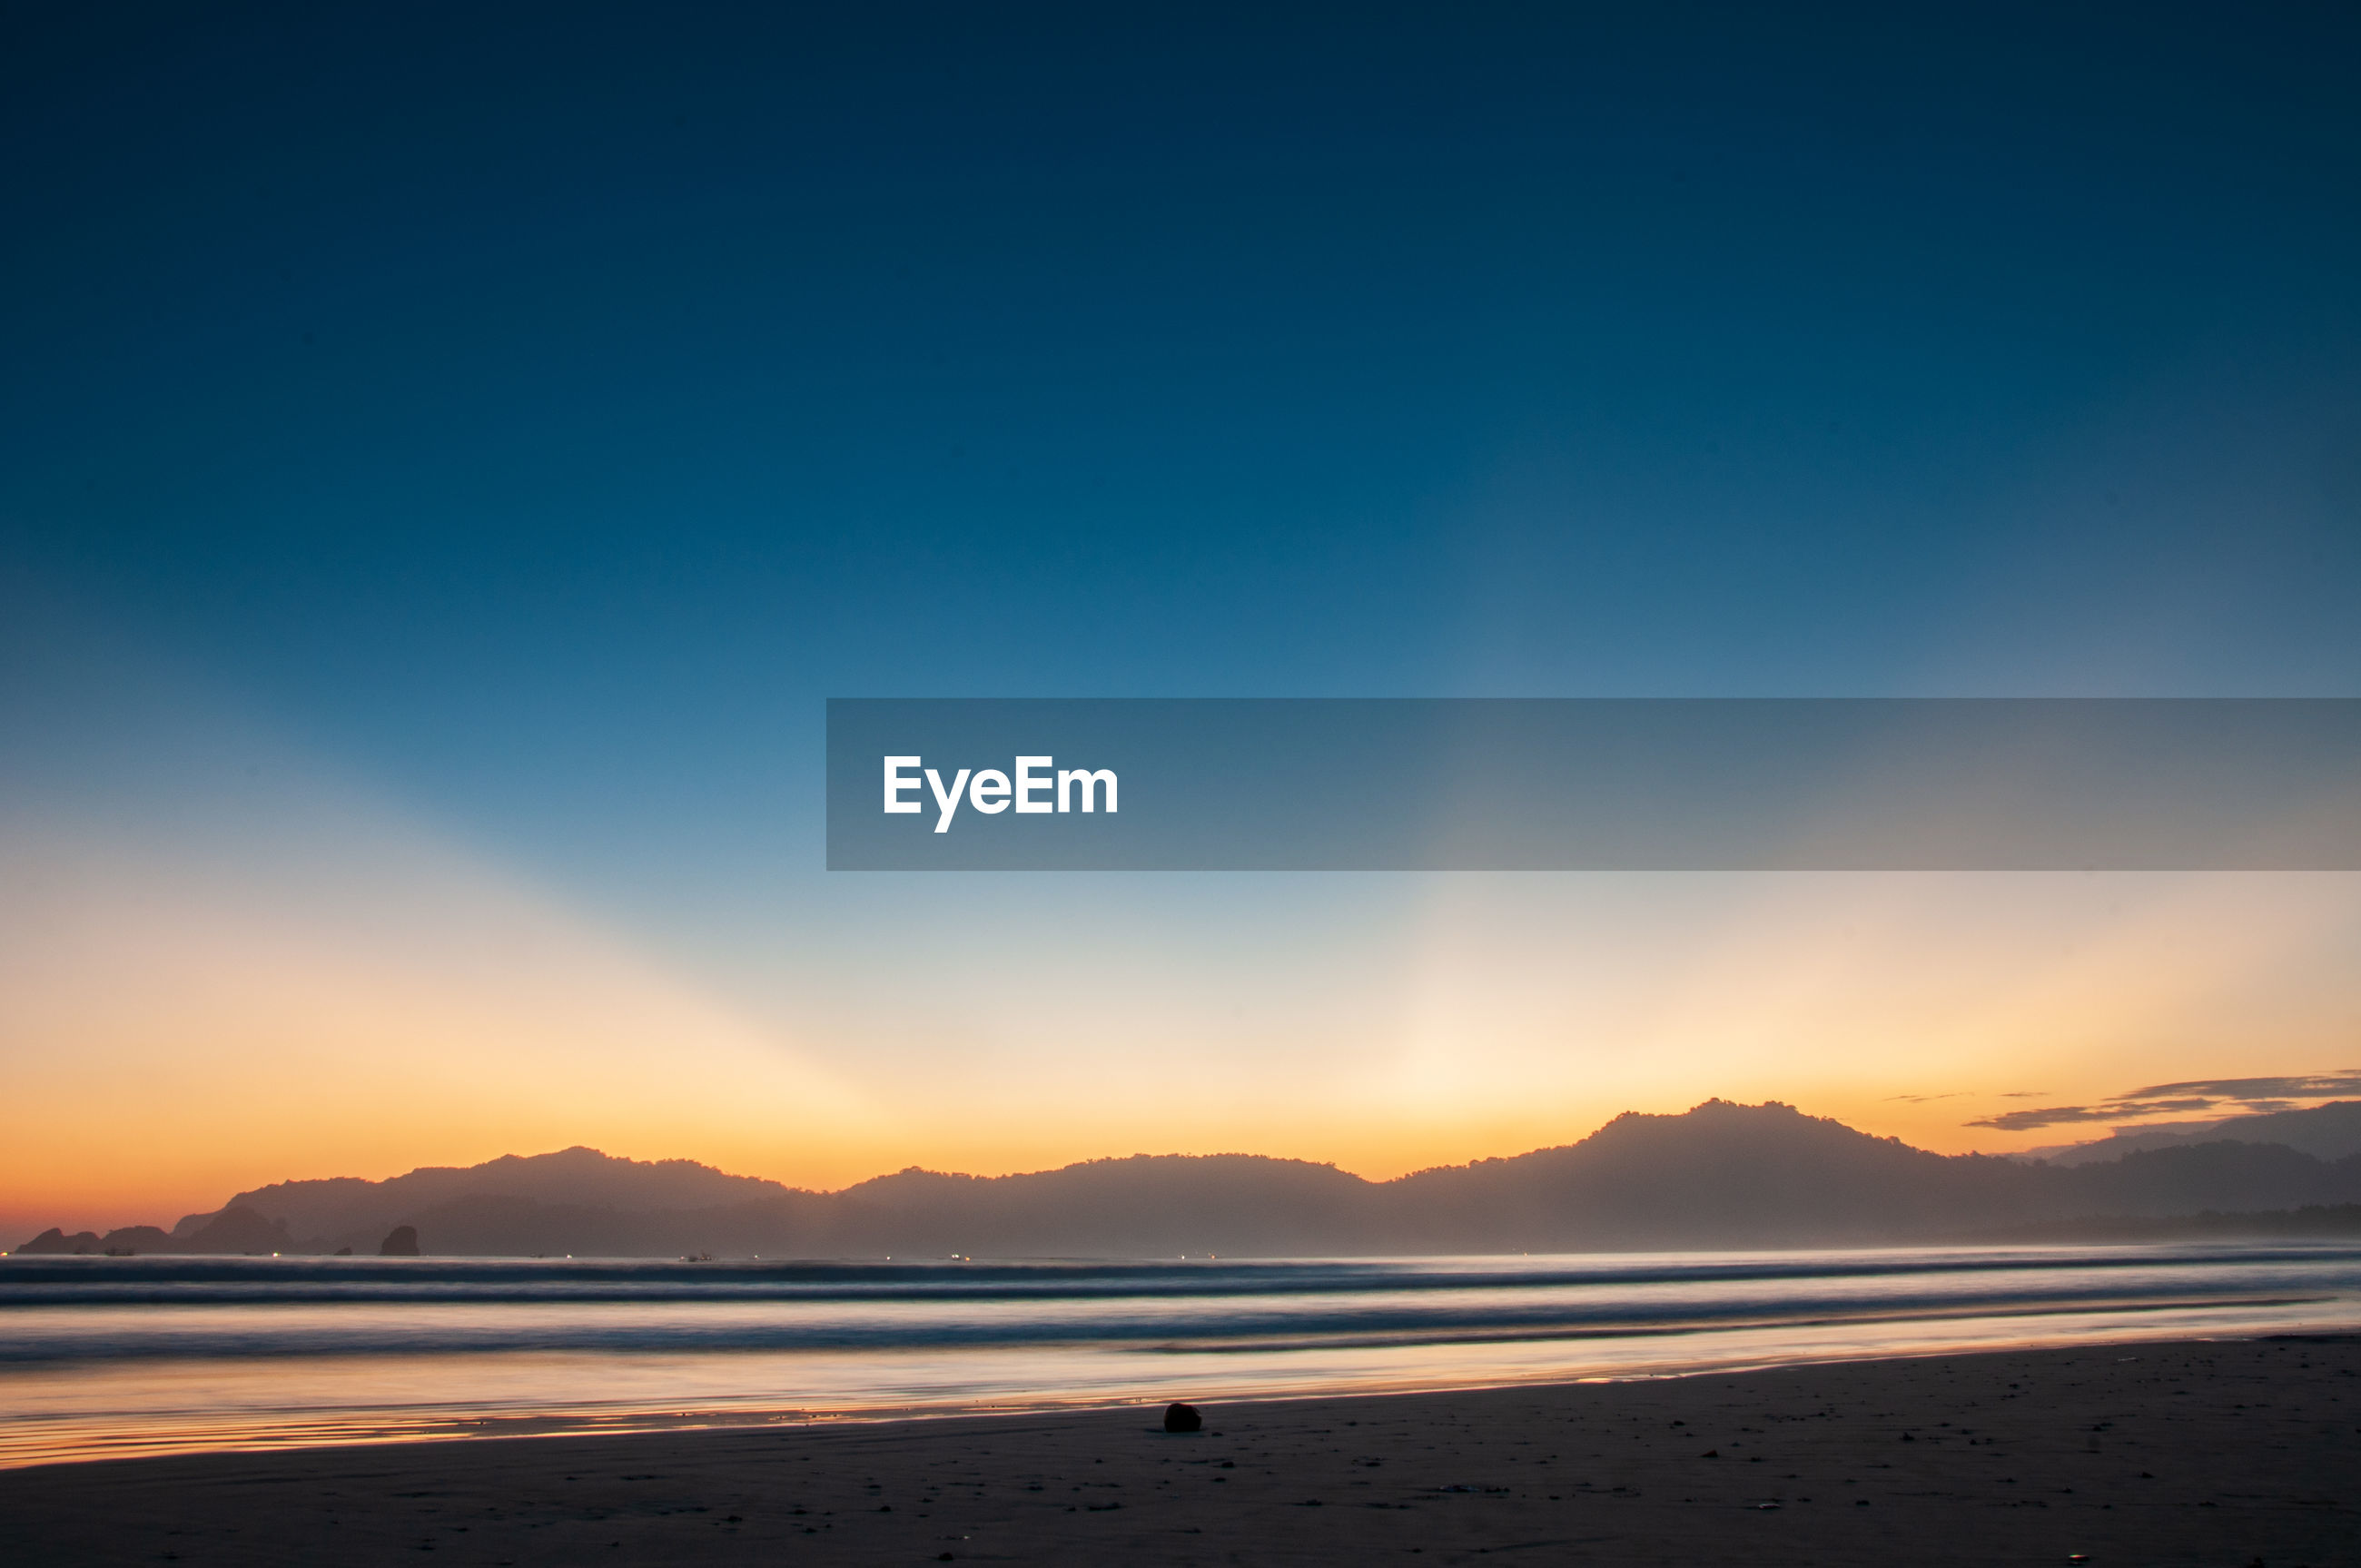 SCENIC VIEW OF SEA AGAINST BLUE SKY DURING SUNSET